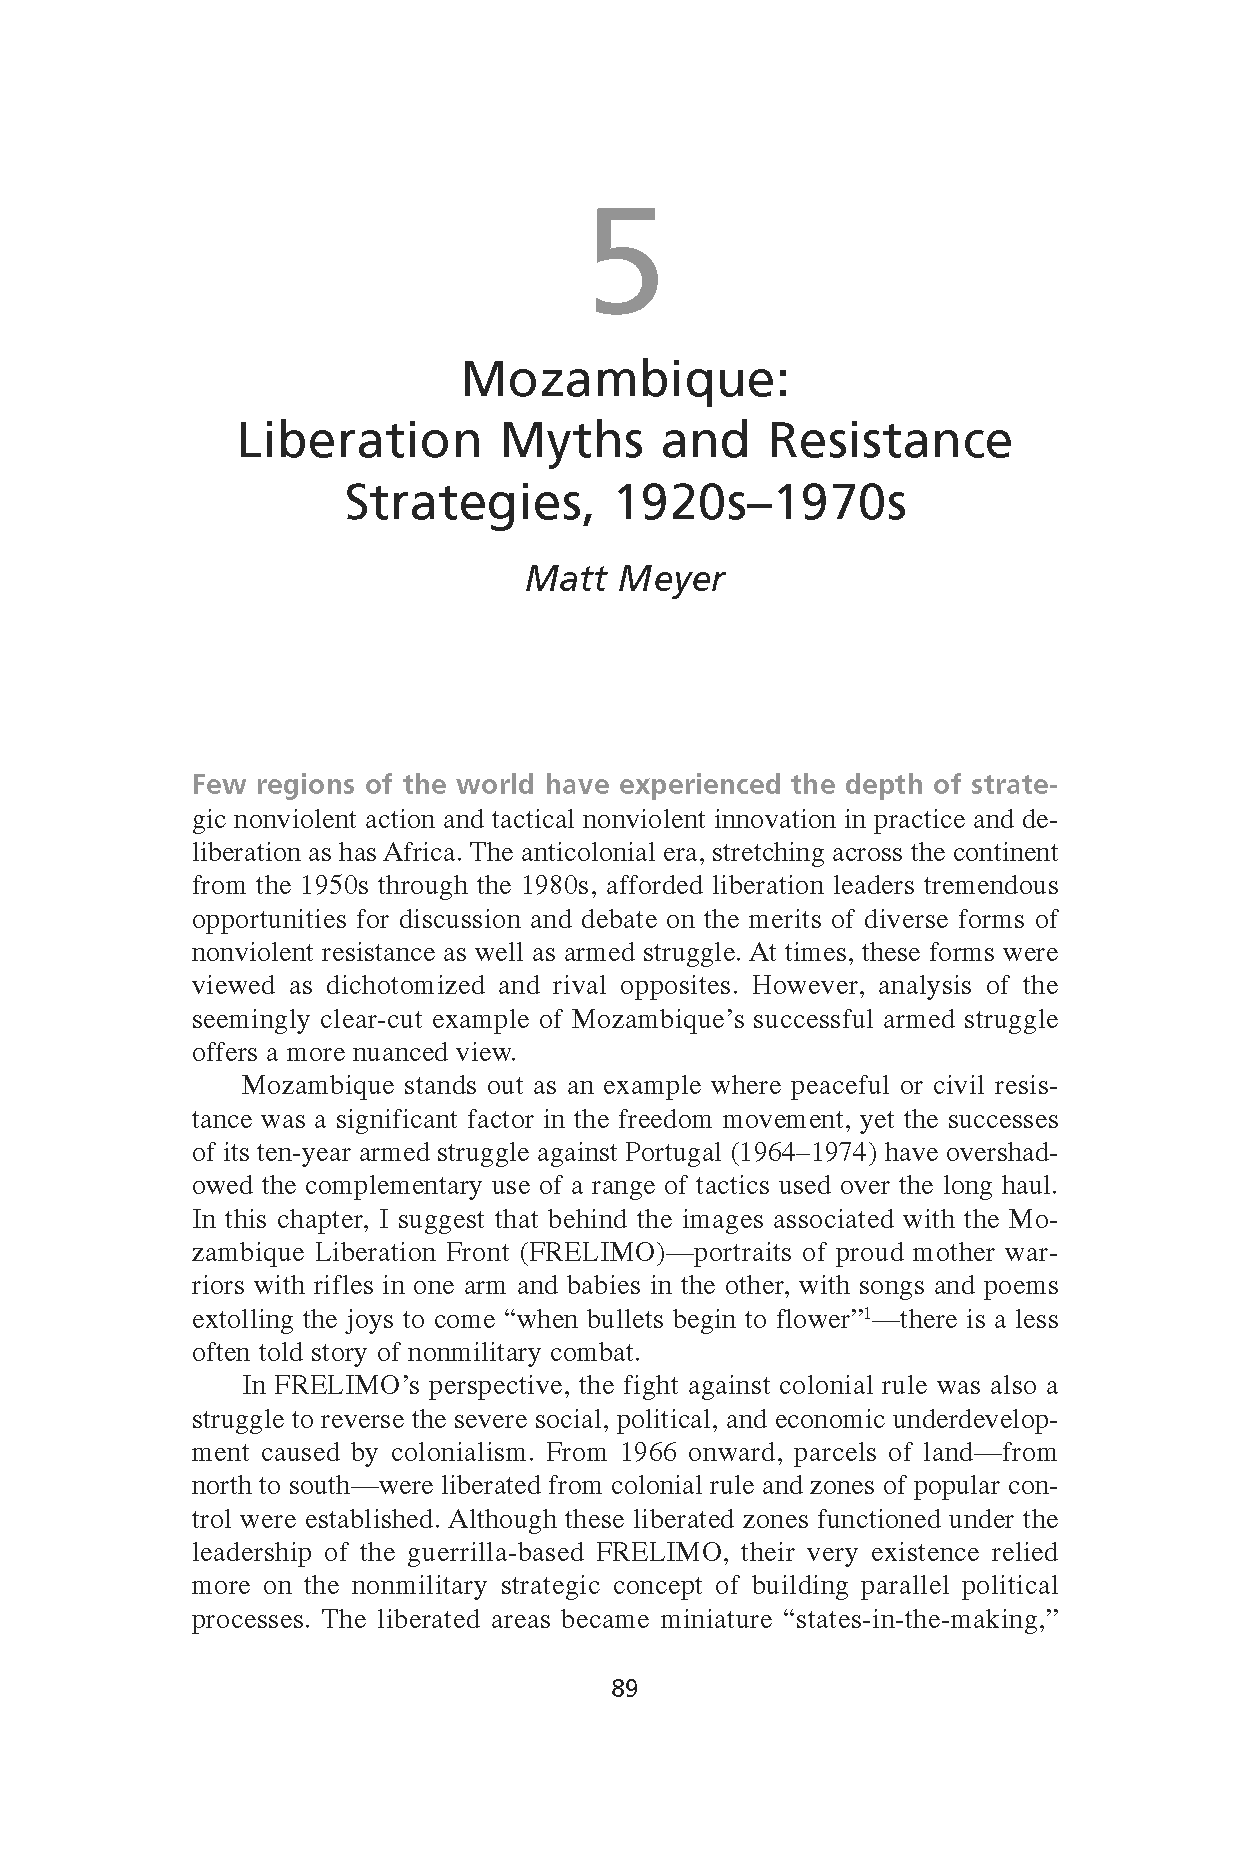 Mozambique: Liberation Myths and Resistance Strategies, 1920s-1970s (Chapter 5 from 'Recovering Nonviolent History')